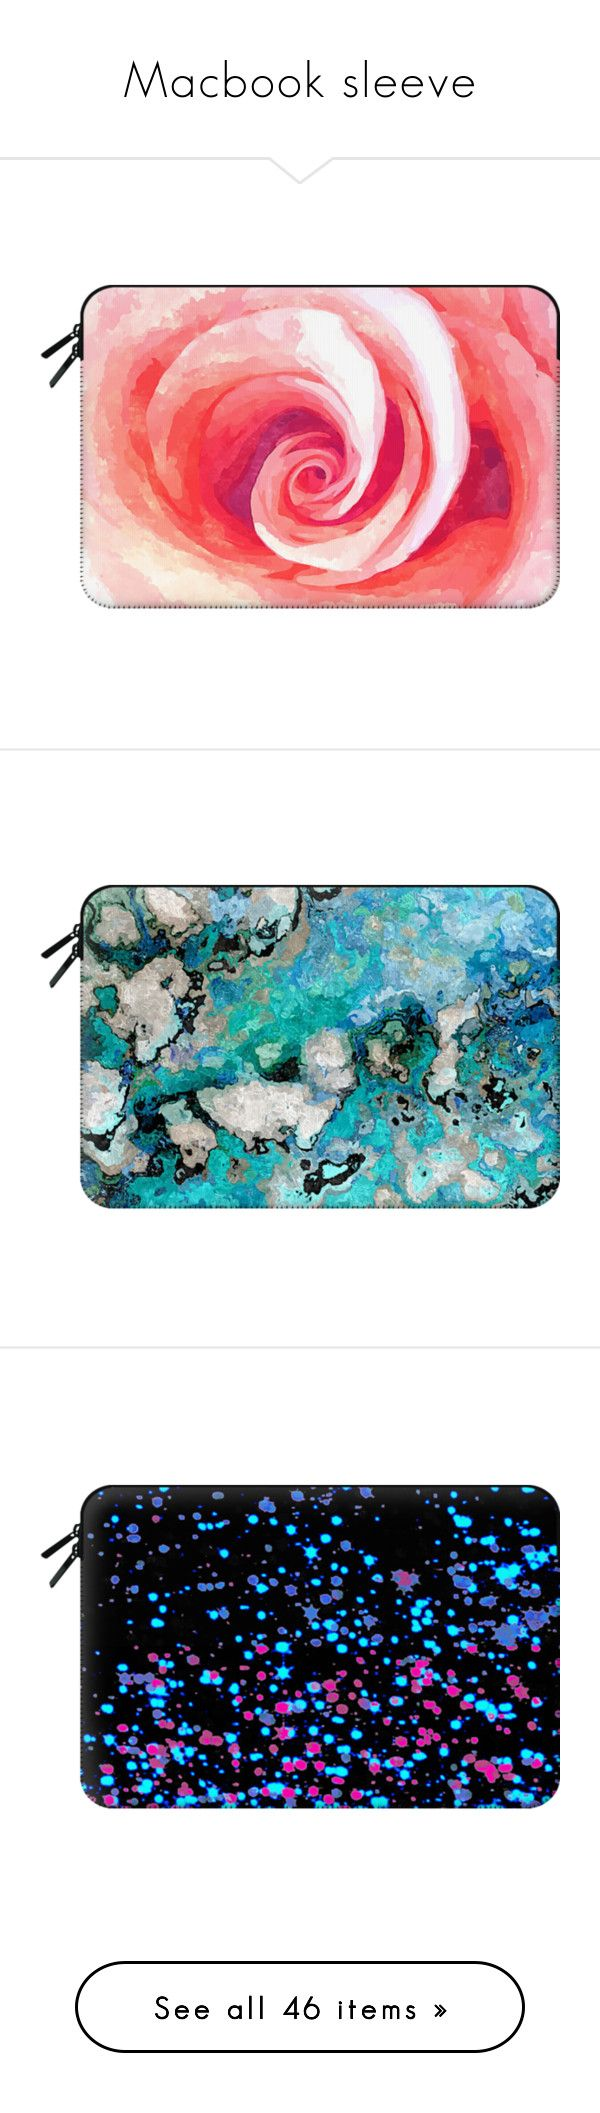 """""""Macbook sleeve"""" by mariami-princess2013 ❤ liked on Polyvore featuring accessories, tech accessories, macbook sleeve, macbook laptop case, laptop sleeve cases, macbook pro laptop case, bags, clutches, fillers and cactus"""